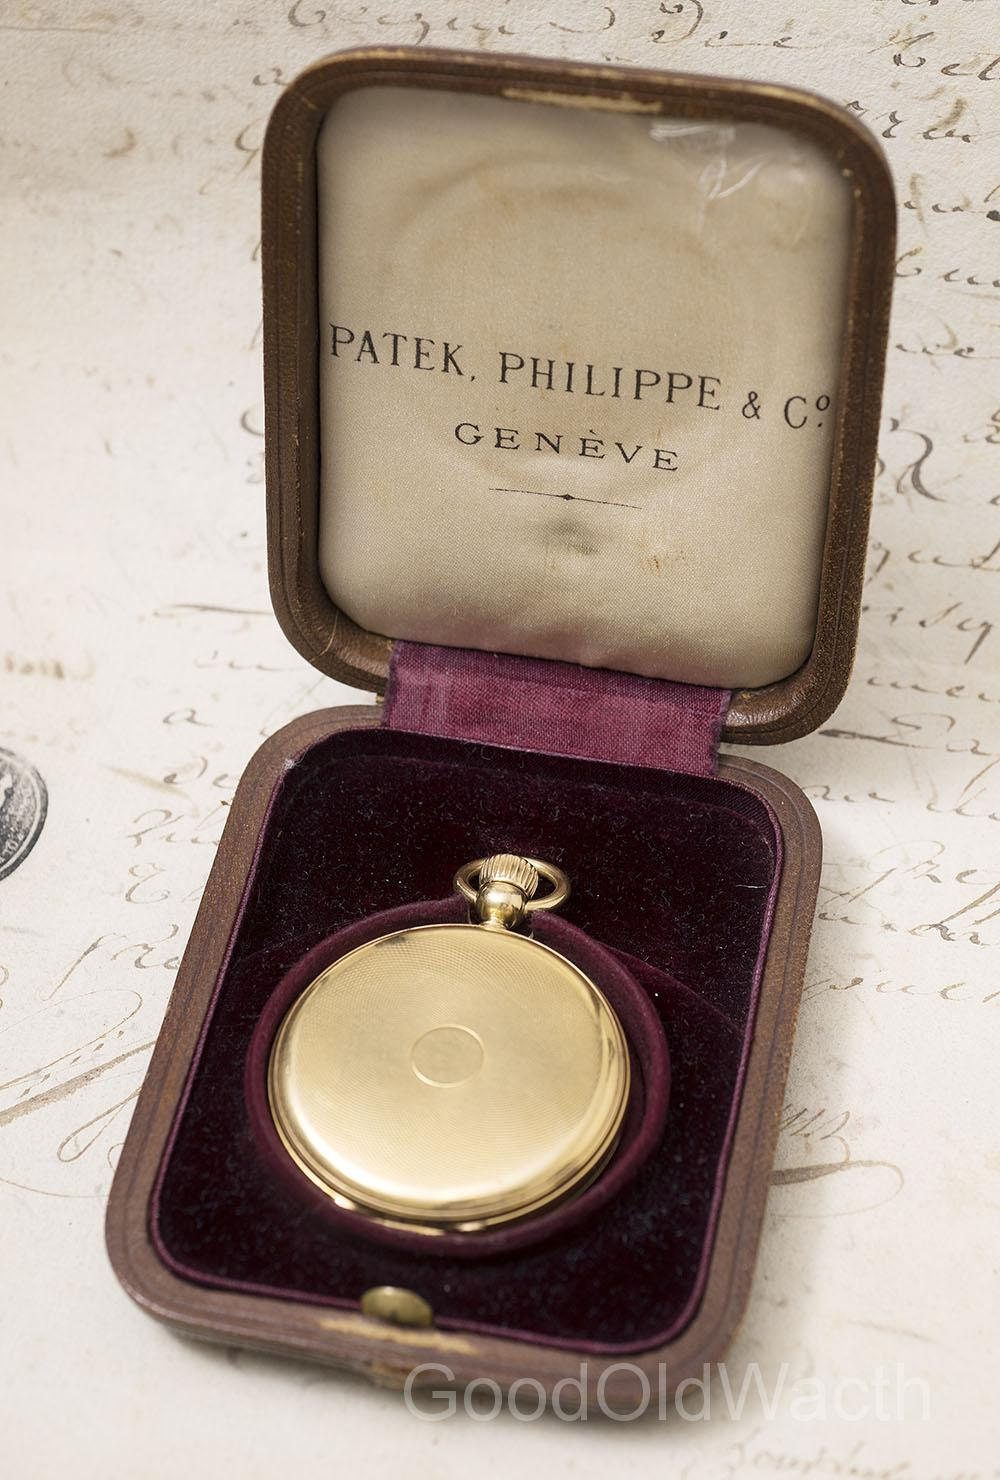 Early 1860 PATEK PHILIPPE Keyless Antique Gold Pocket Watch